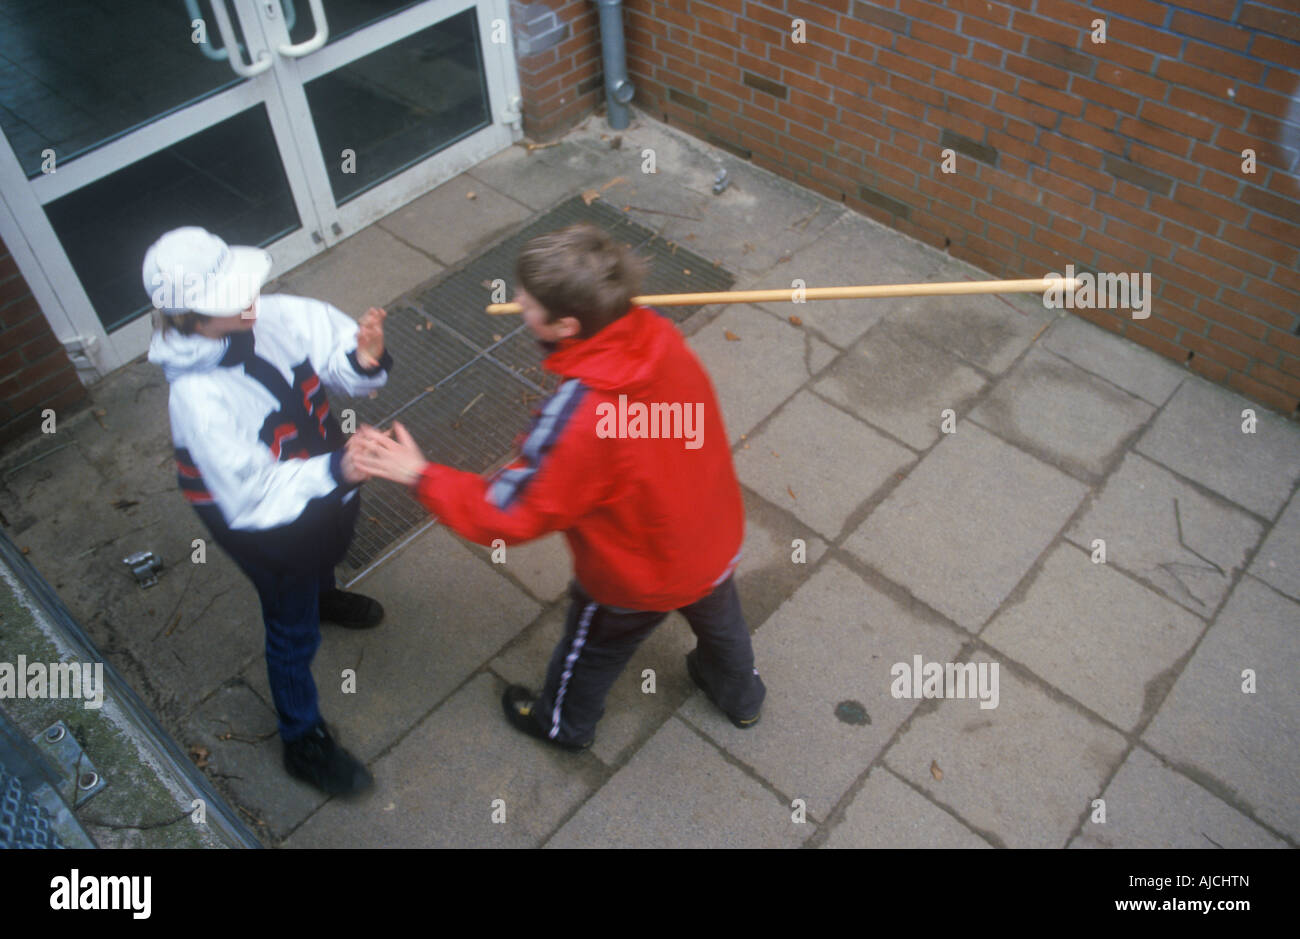 a young boy attacking another one with a stick at a schoolyard - Stock Image